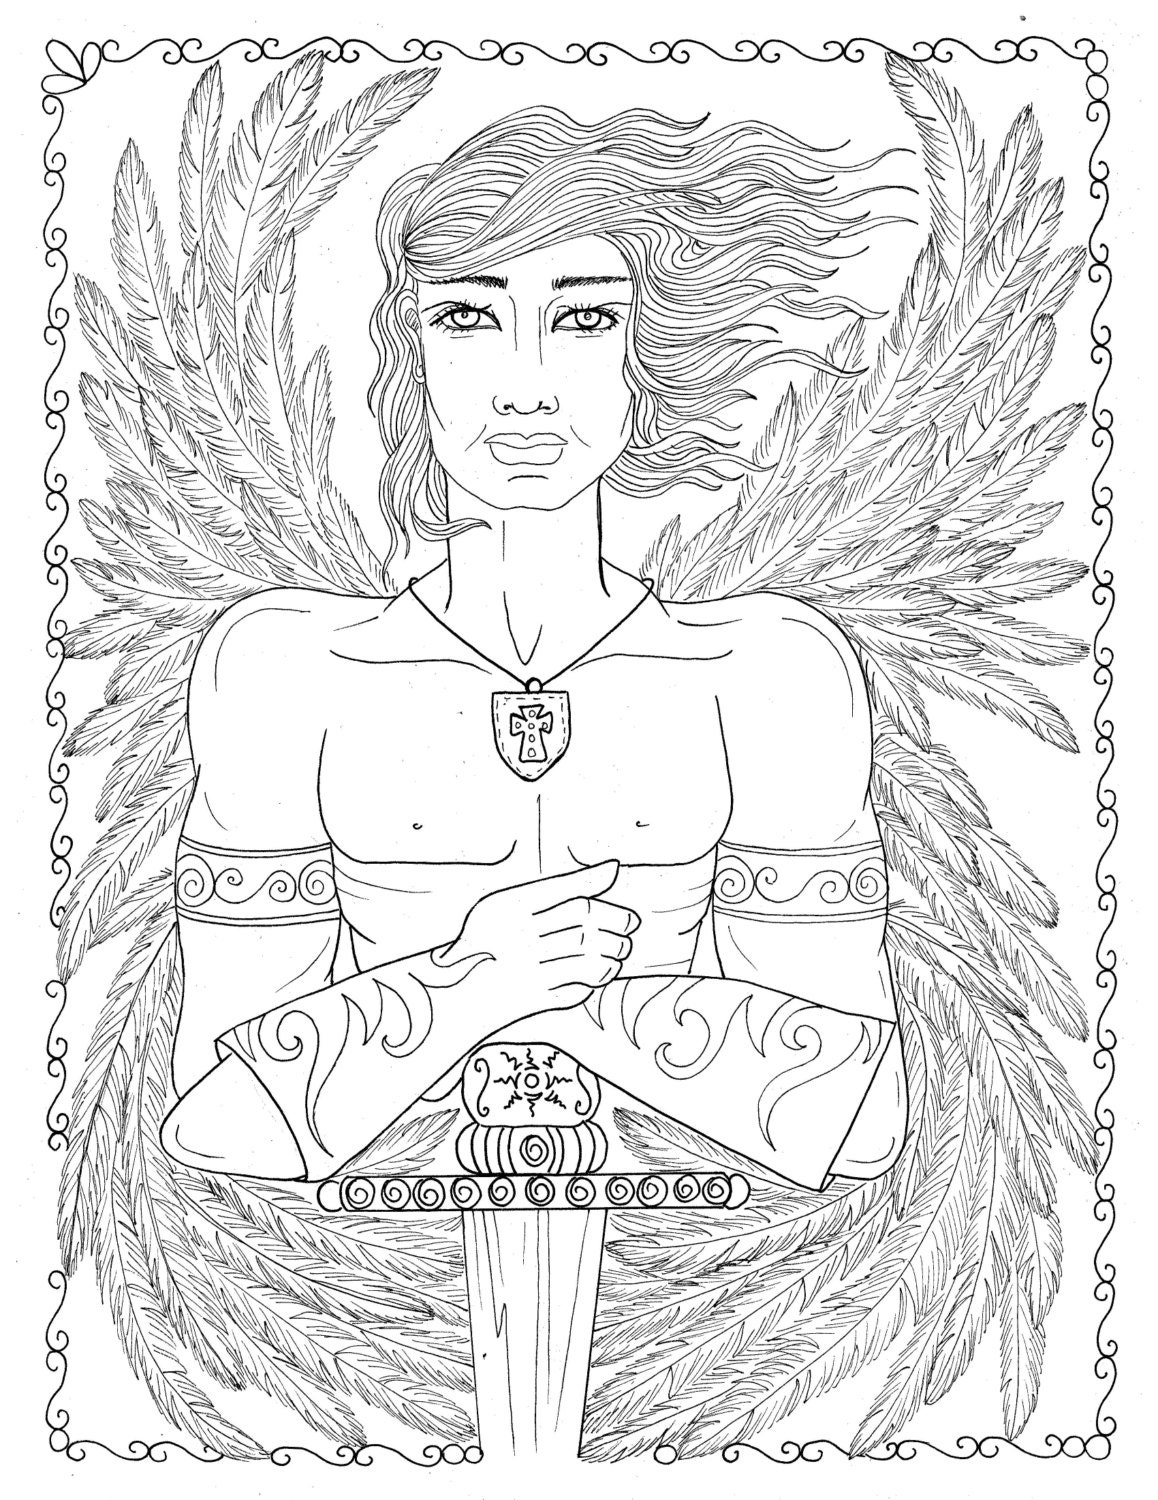 warrior angel coloring pages - photo#22